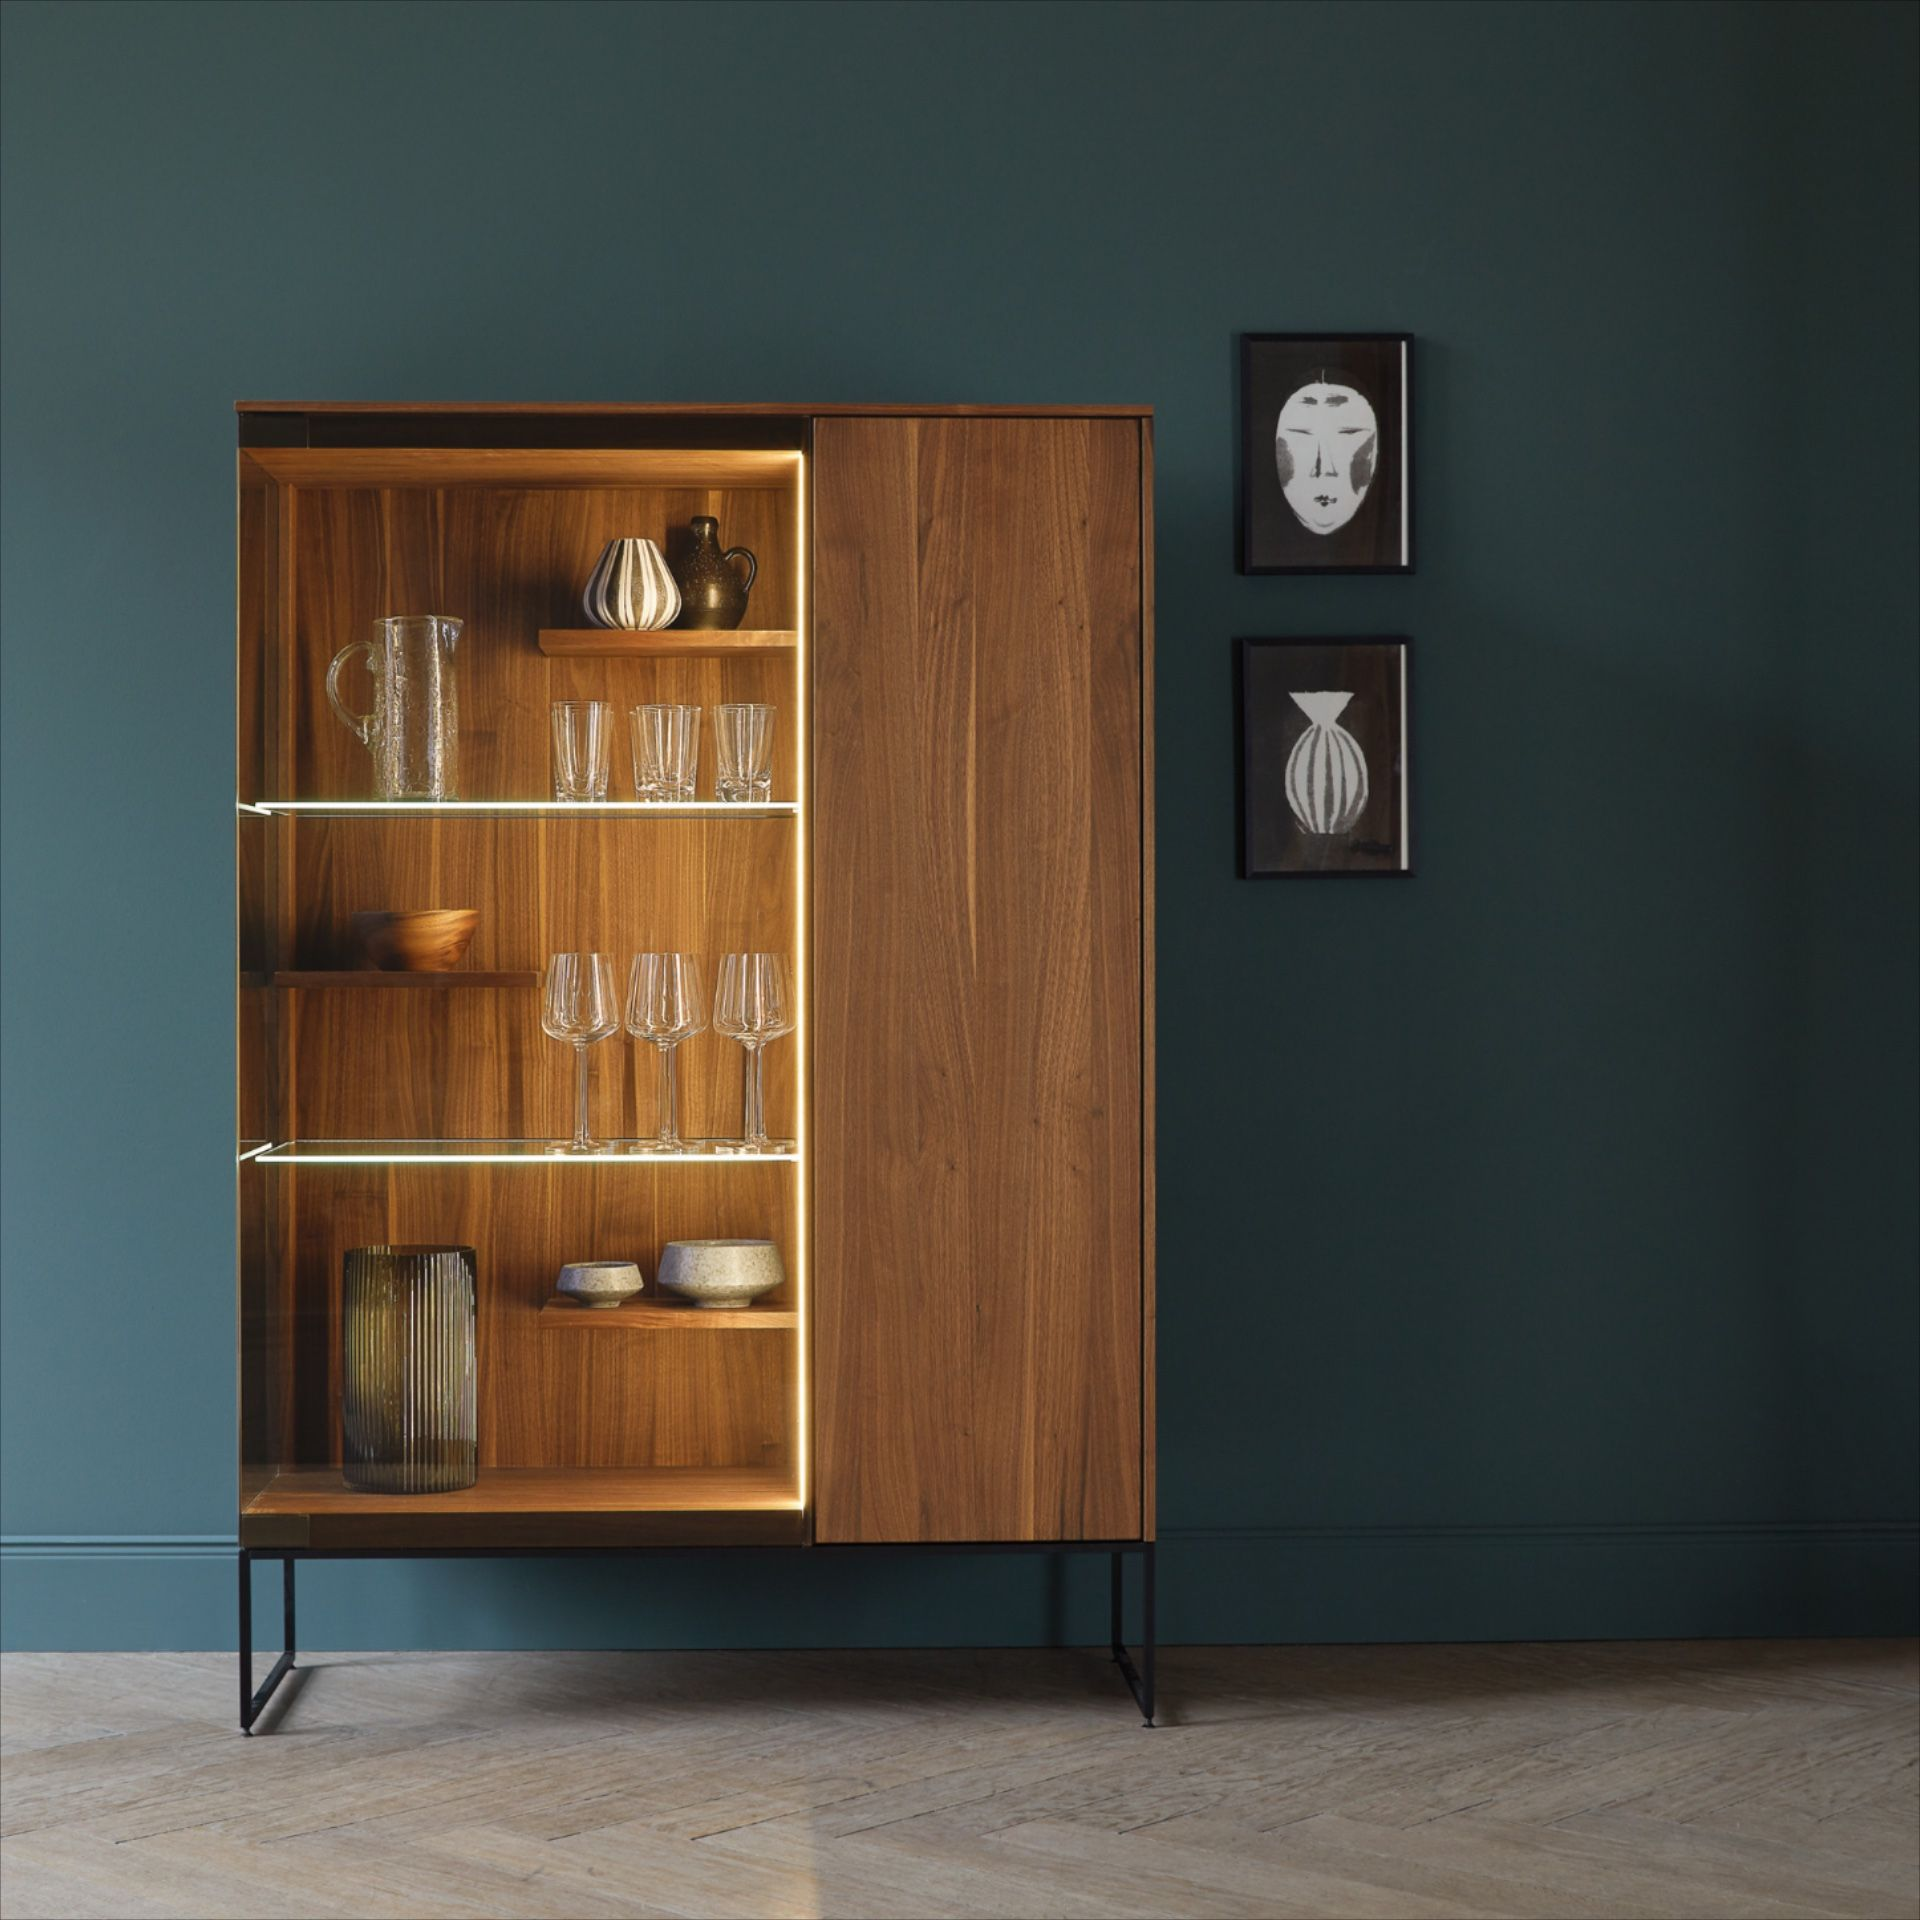 The Filigno Glass Cabinet By Team 7 Offers A Combination Of Open An Closed Storage In Various Solid Wood Finishes The Illuminated Led Glas Wohnen Holz Schrank